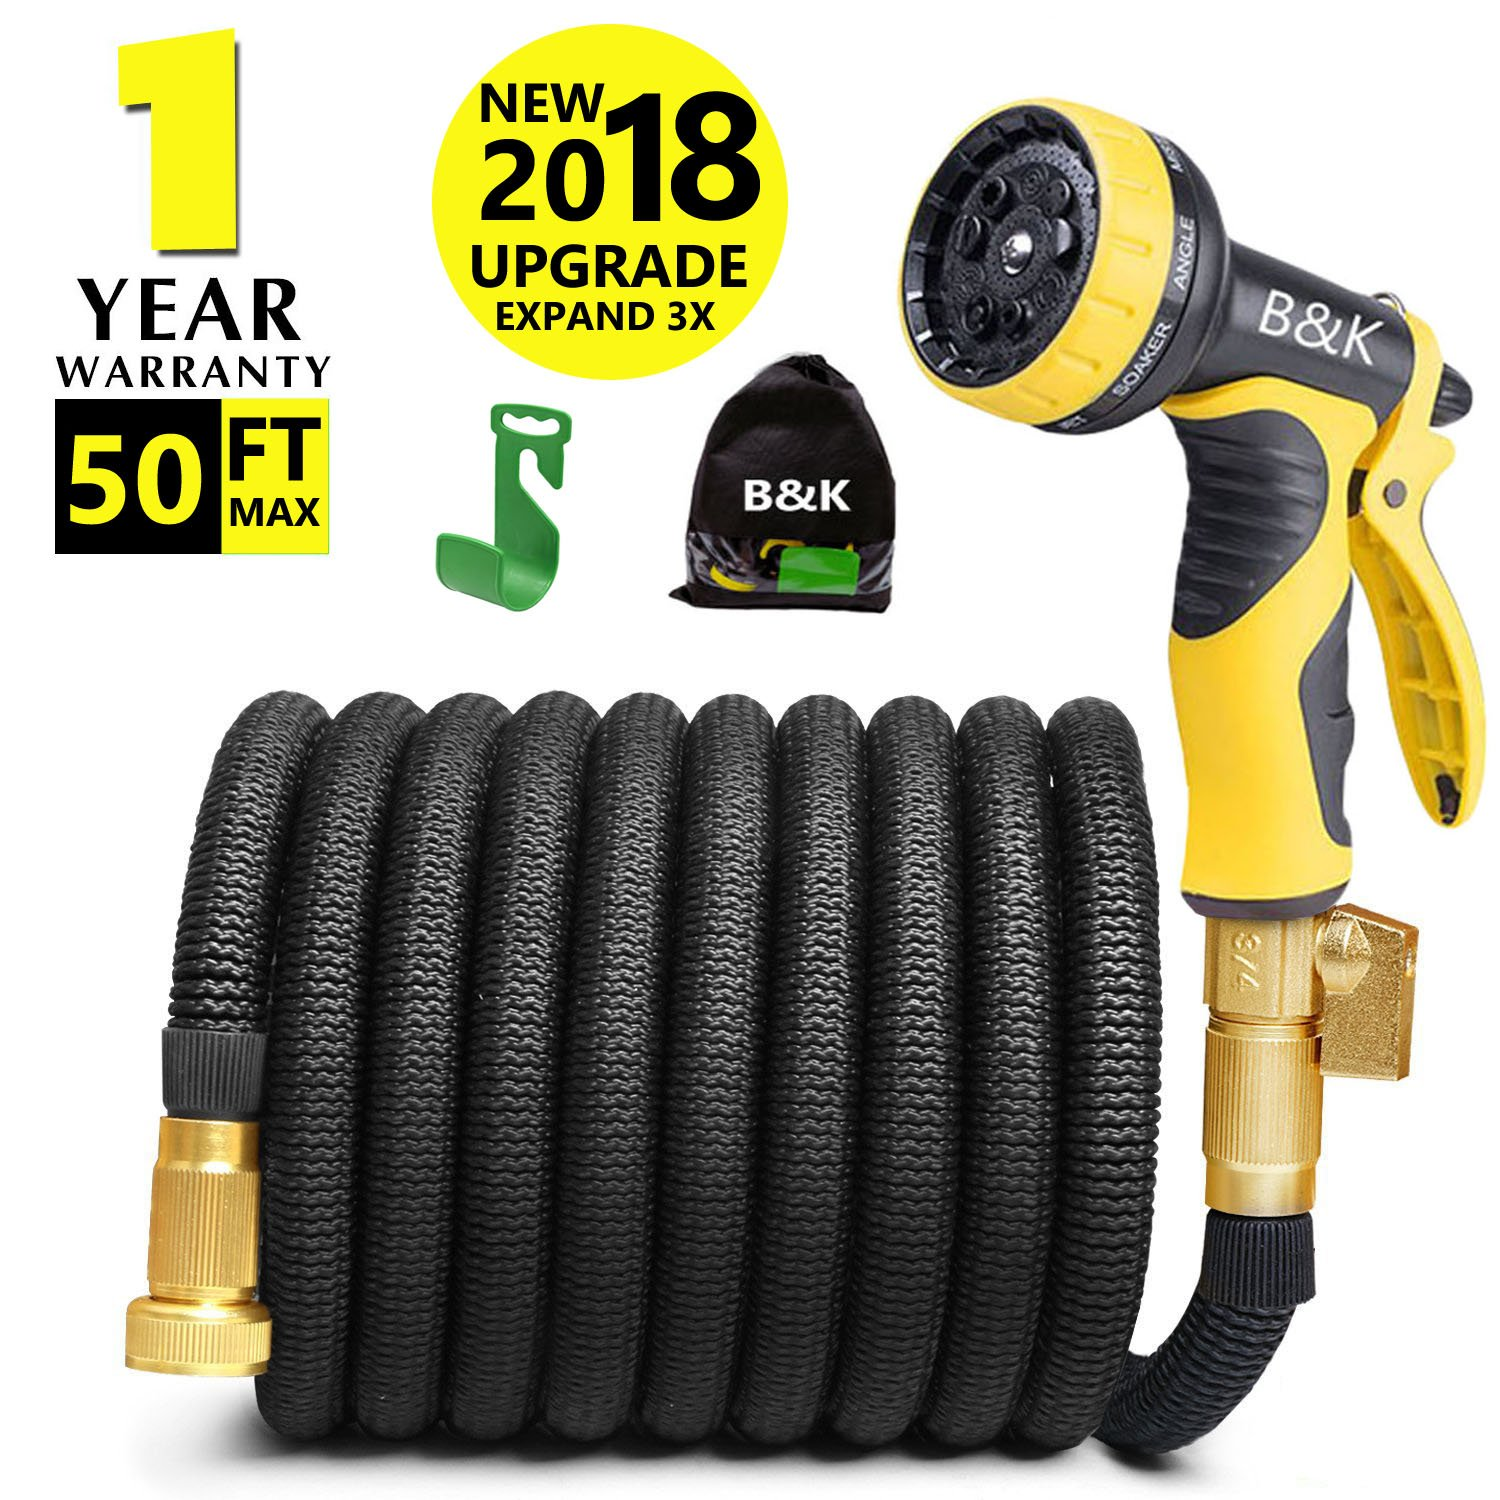 Garden Hose, Lightweight Expandable Water Hose Set,Outdoor Expanding Flexible Double Latex Core Yard Hose with 3/4 Solid Brass Fitting,9 Functions Spray Nozzle and Hanger